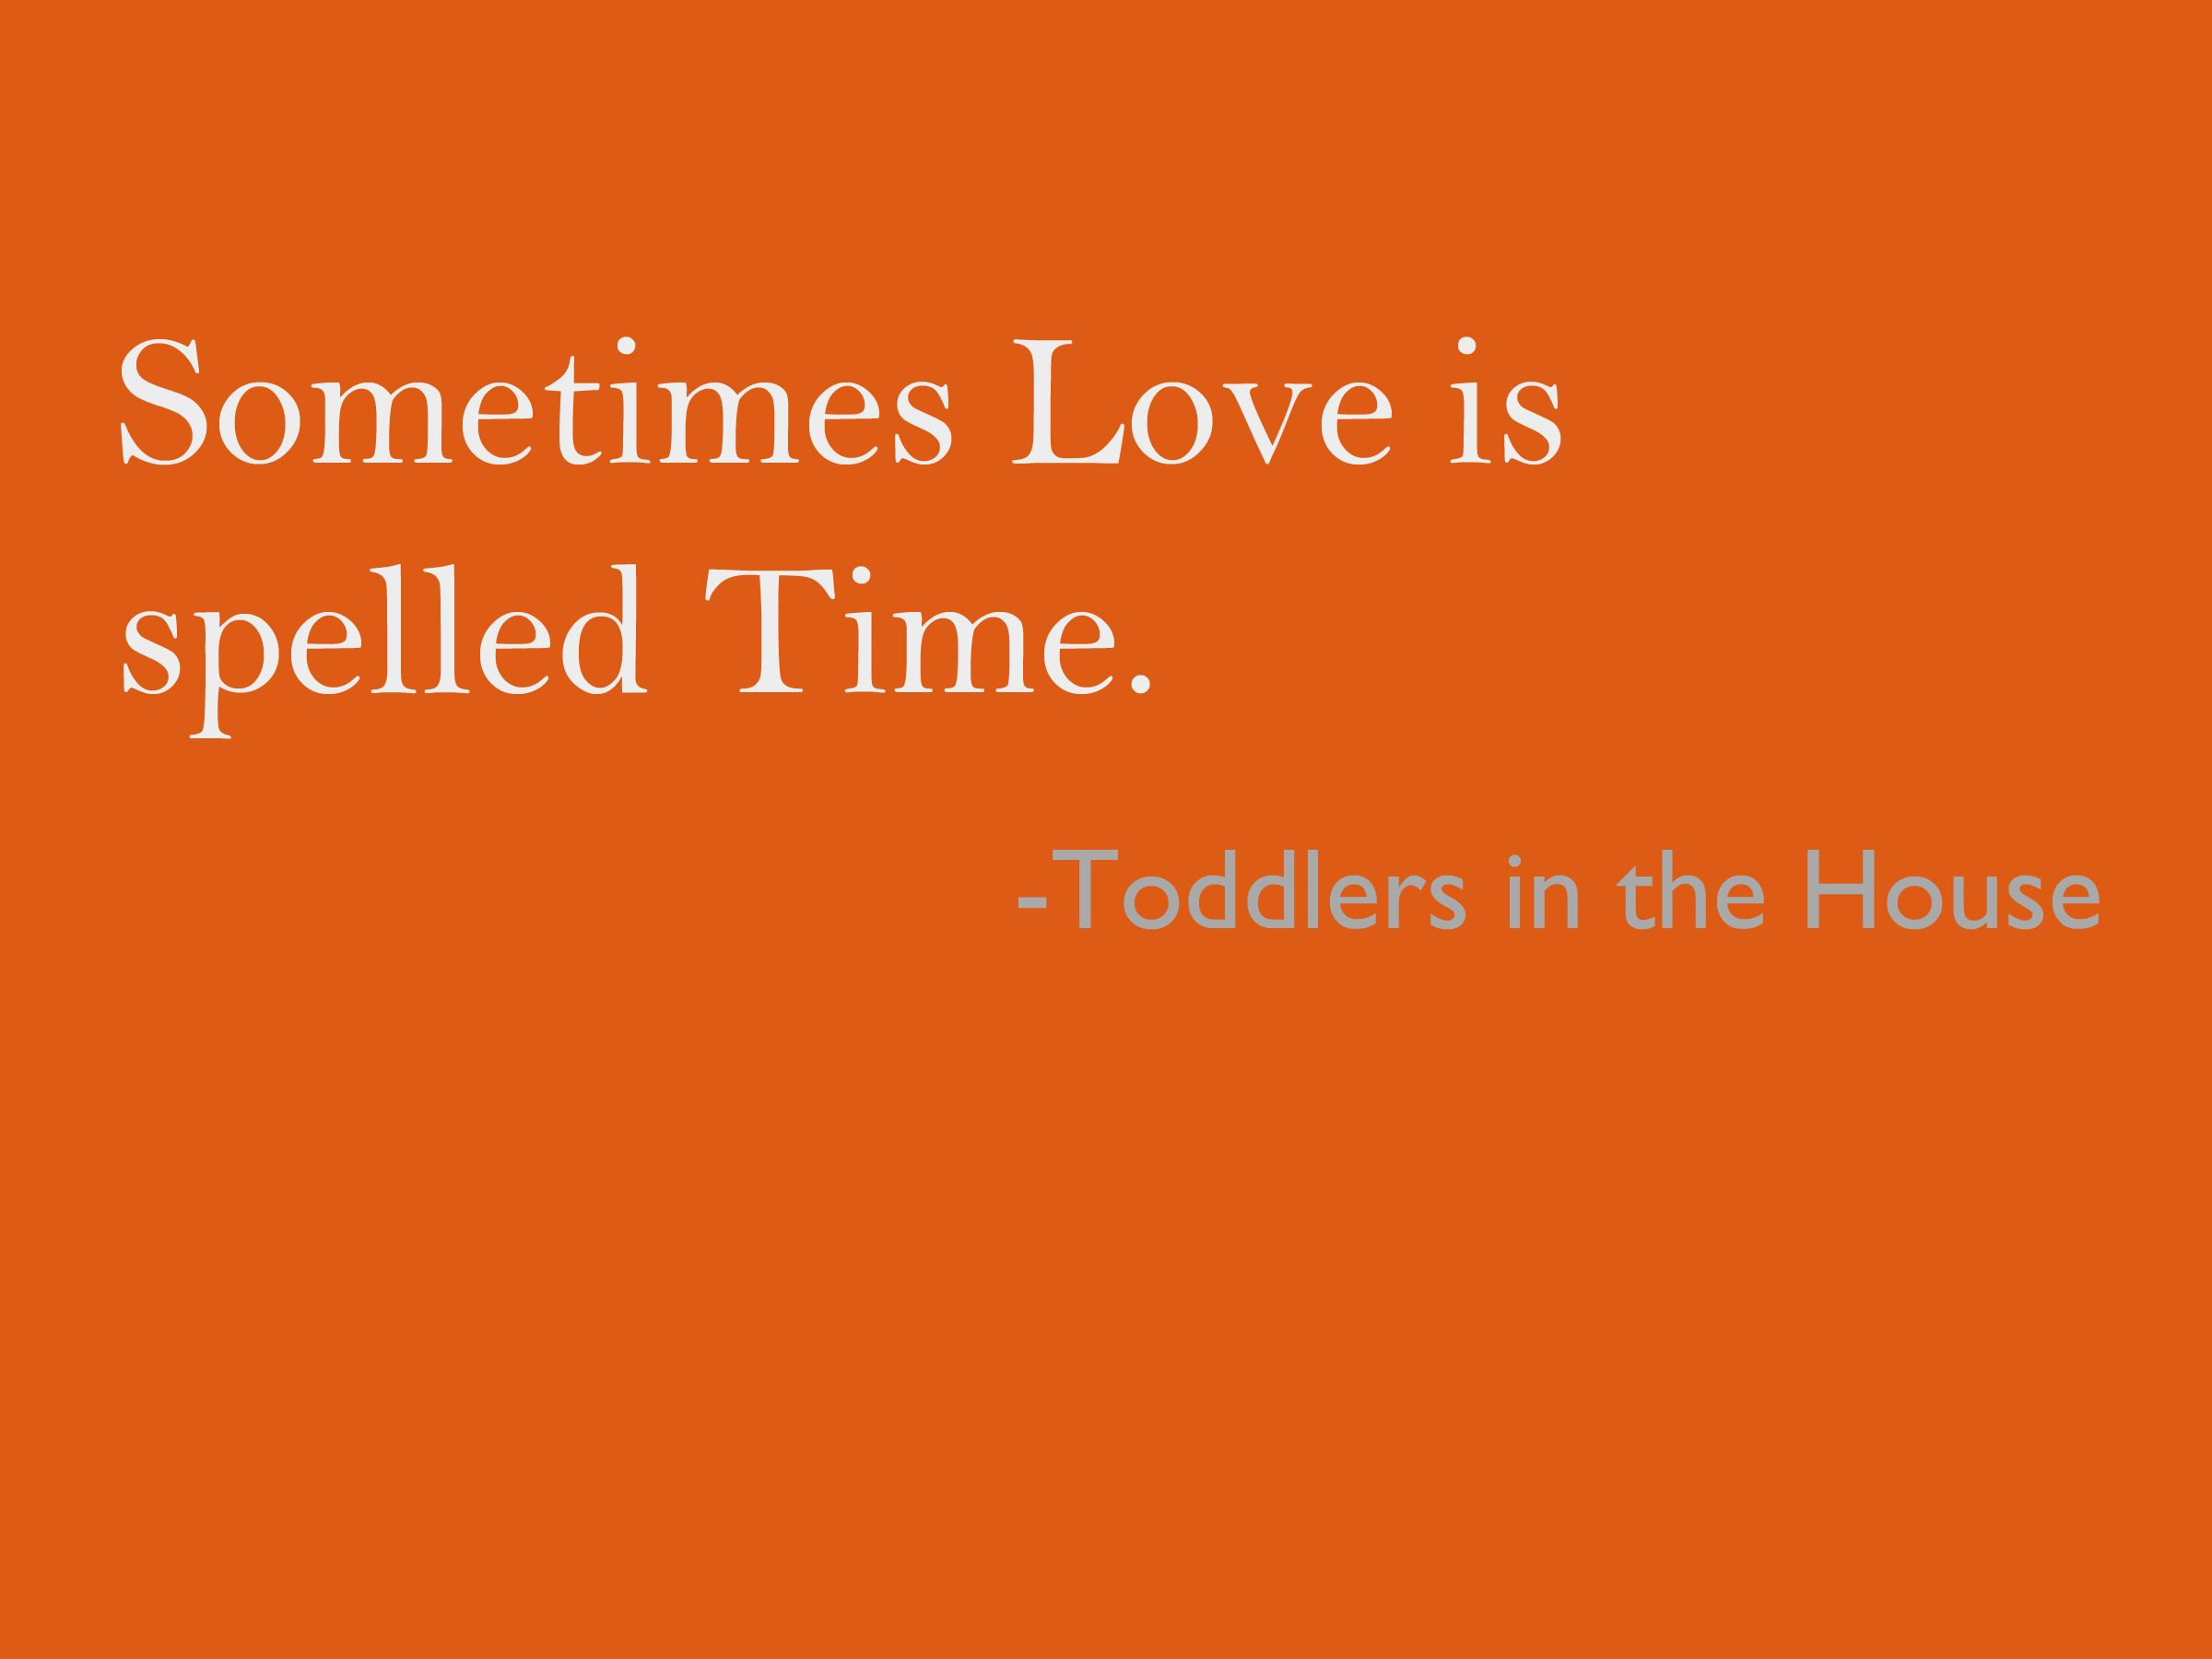 -Toddlers in the House